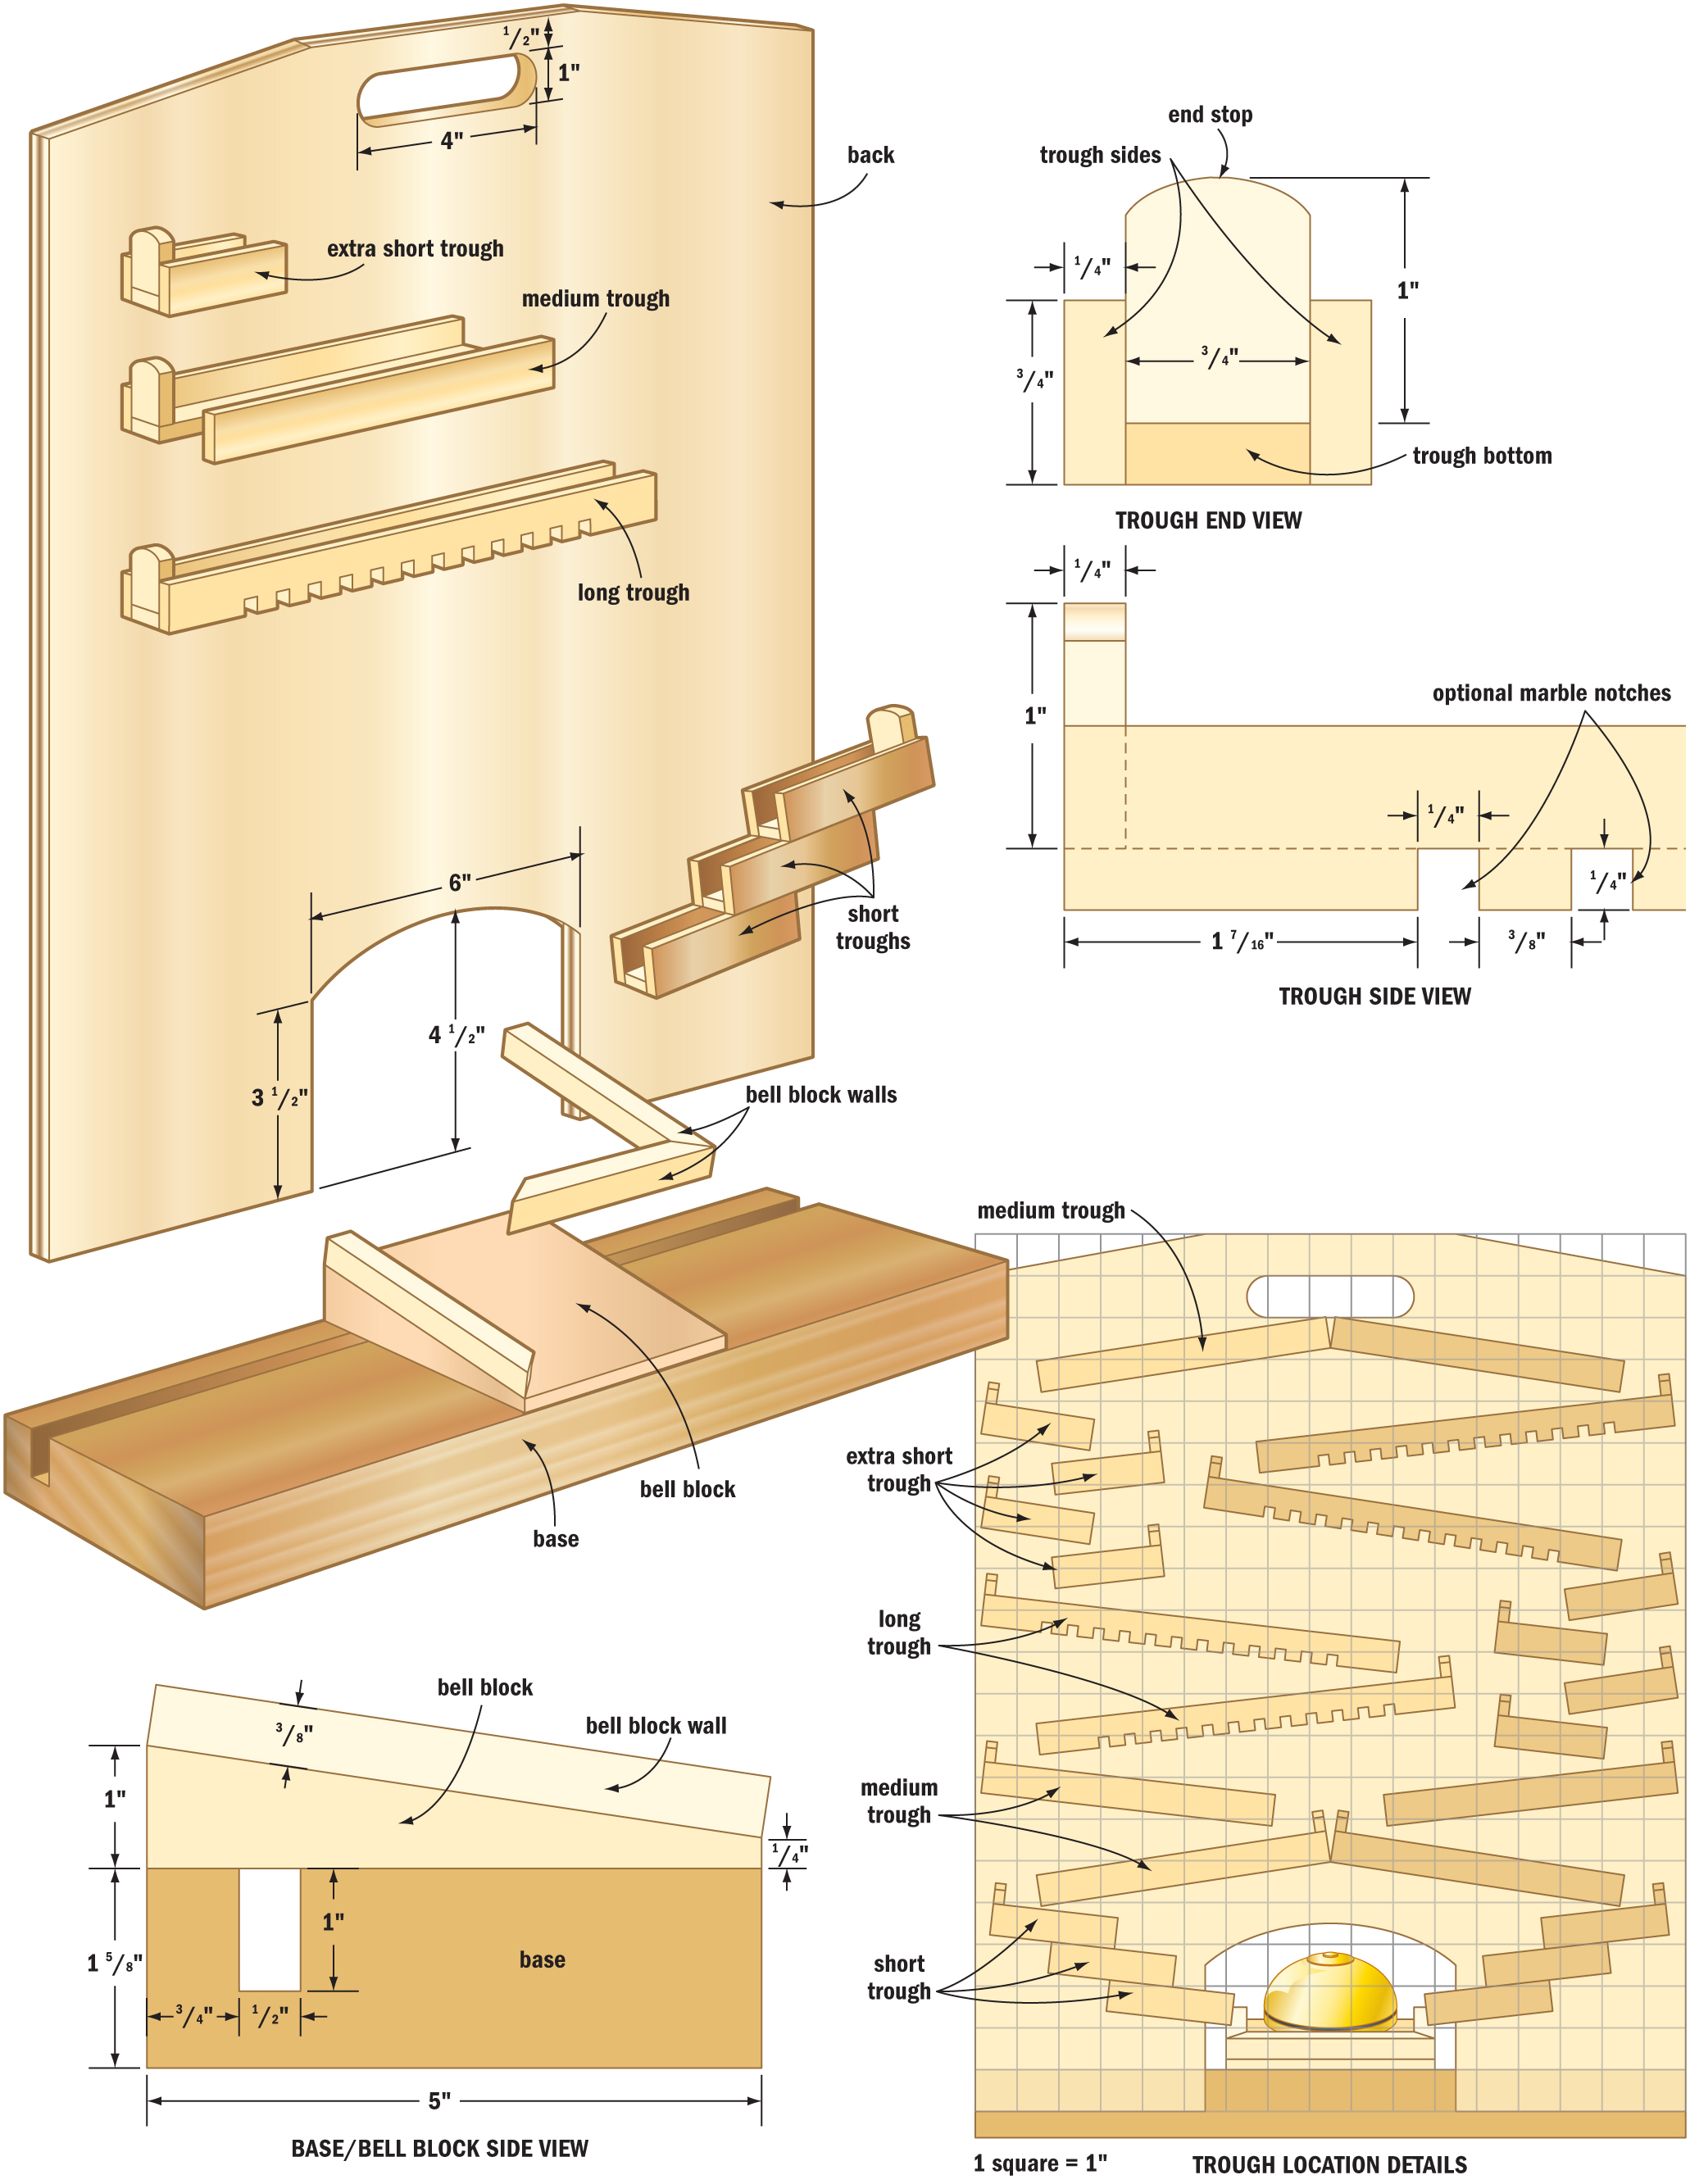 marble racer woodworking plans - WoodShop Plans